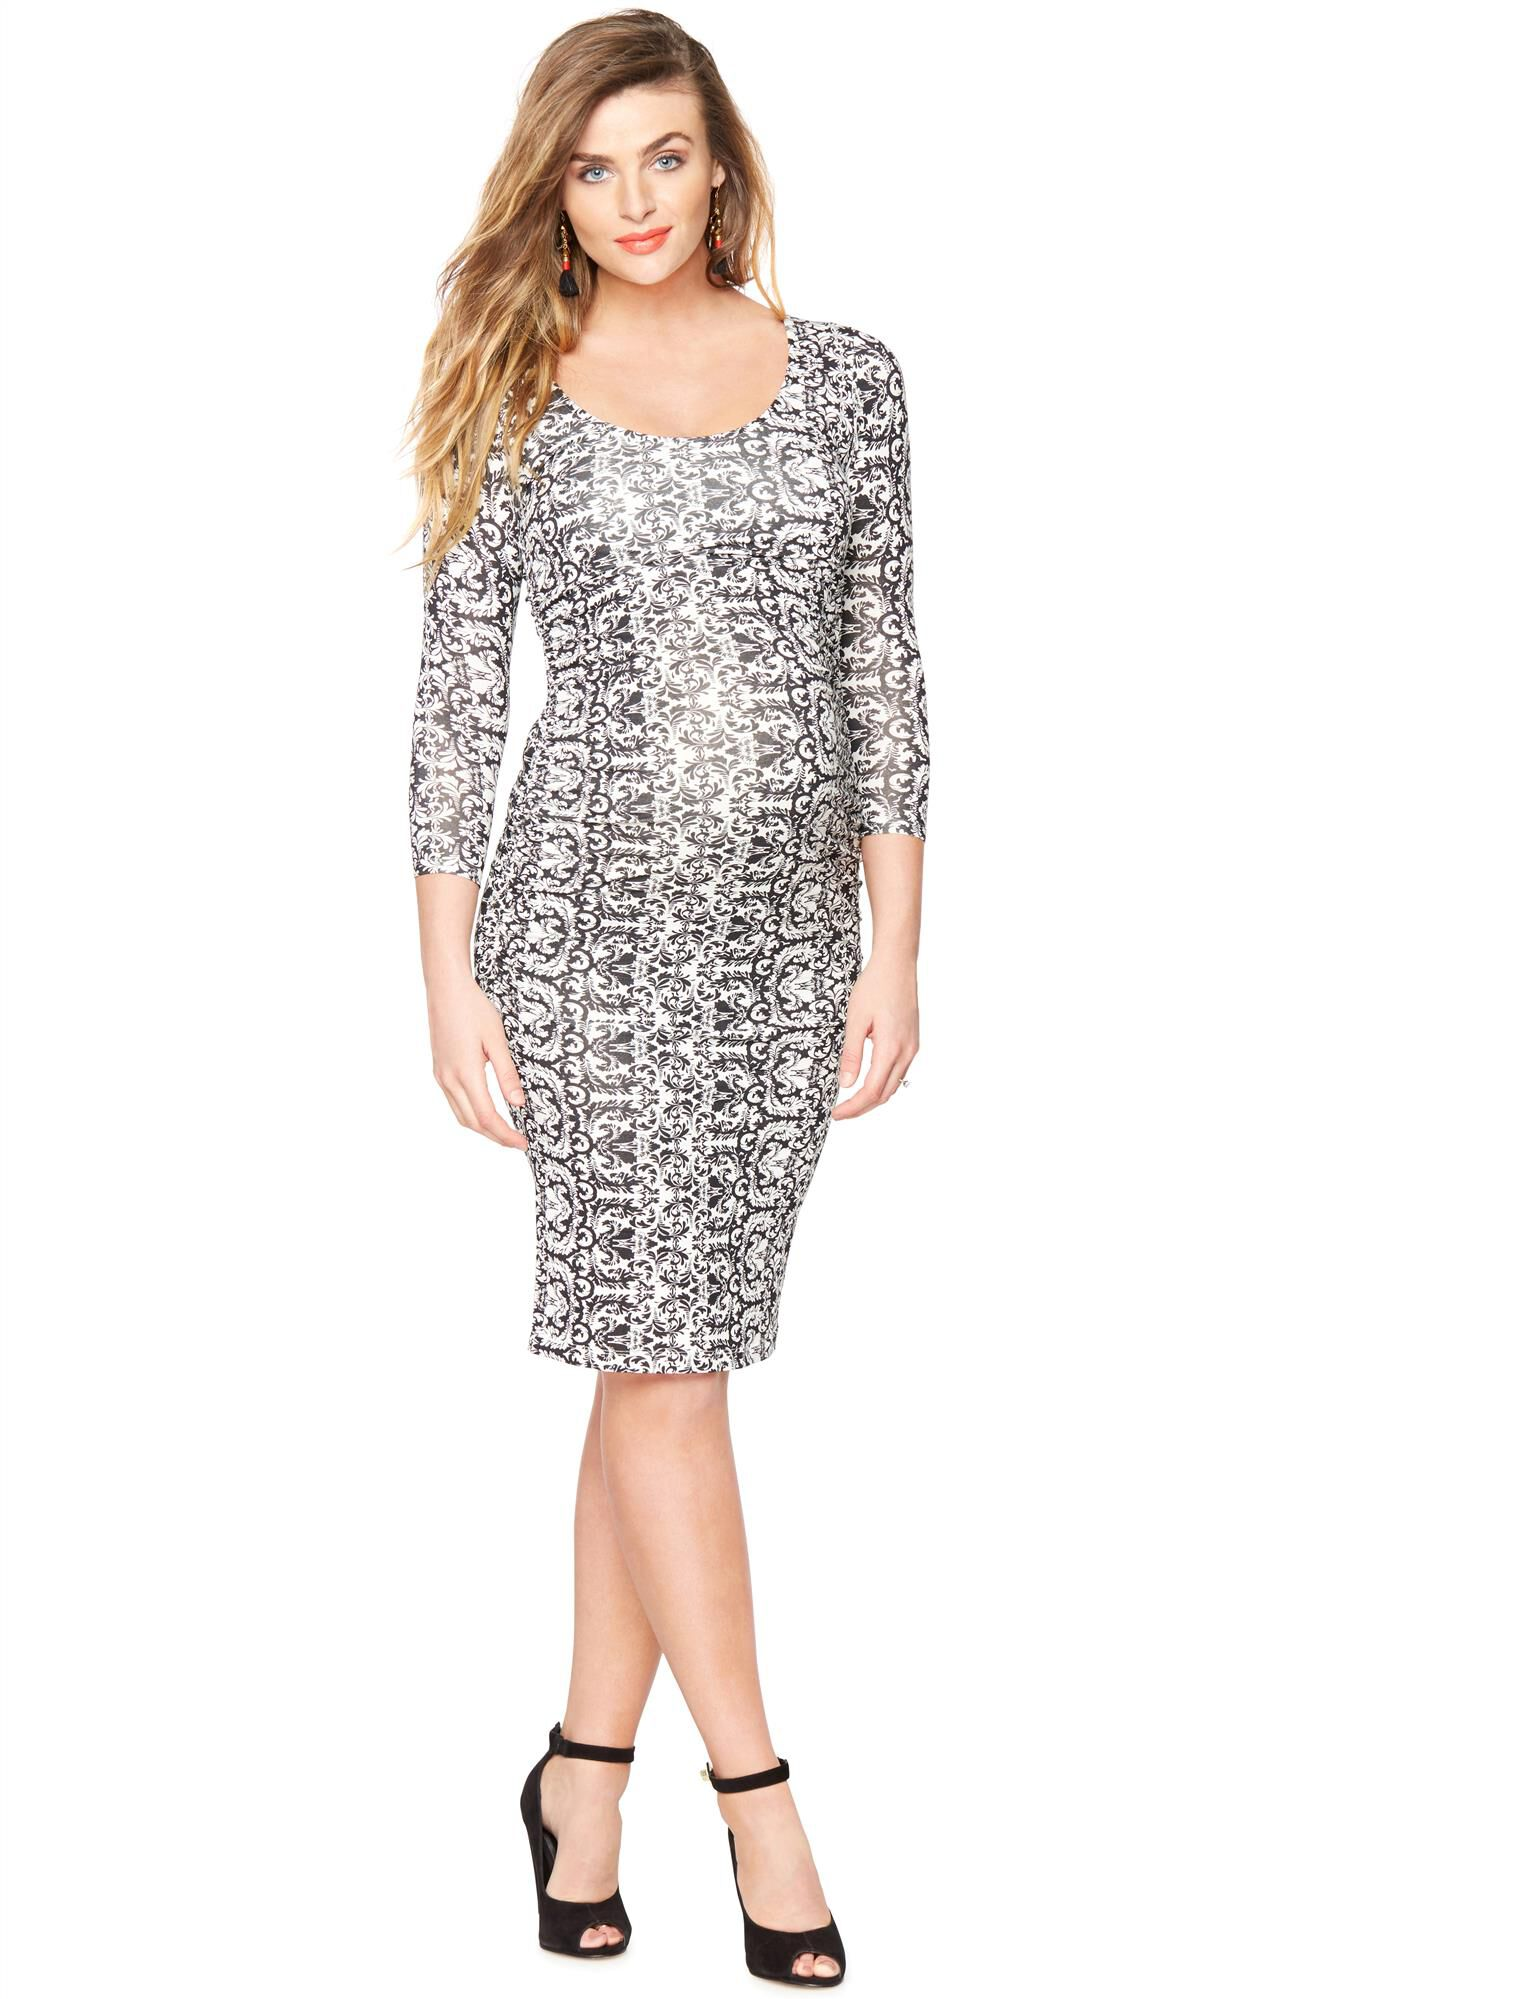 Isabella Oliver Maternity T-shirt Dress